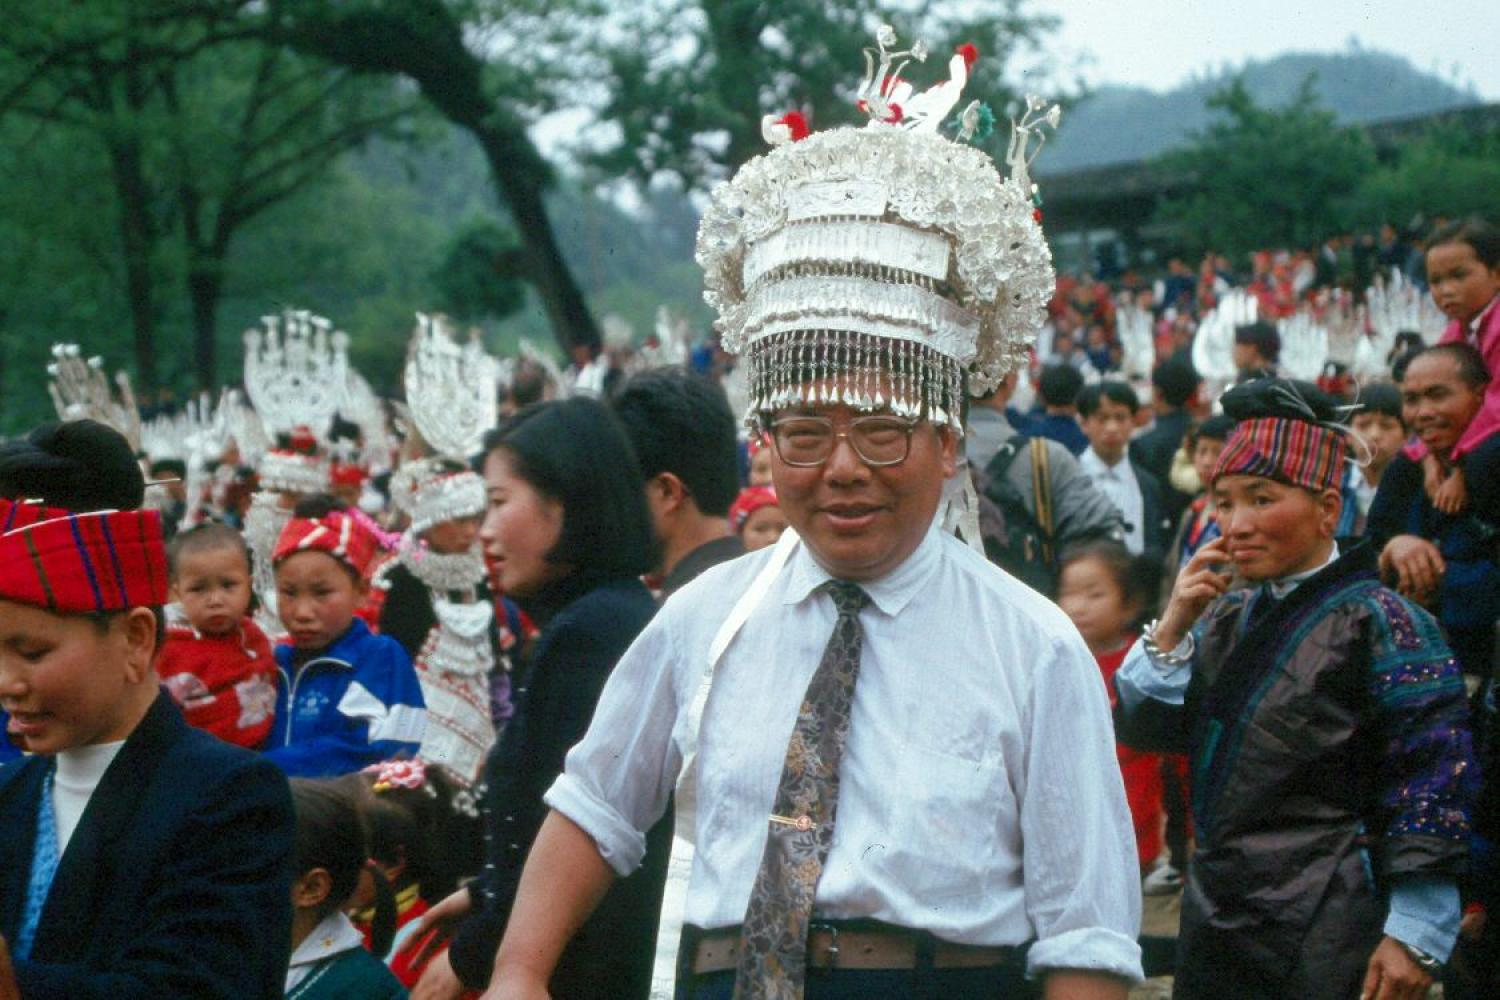 A Chinese tourist dons a Miao silver headdress at the Sister's Rice Festival